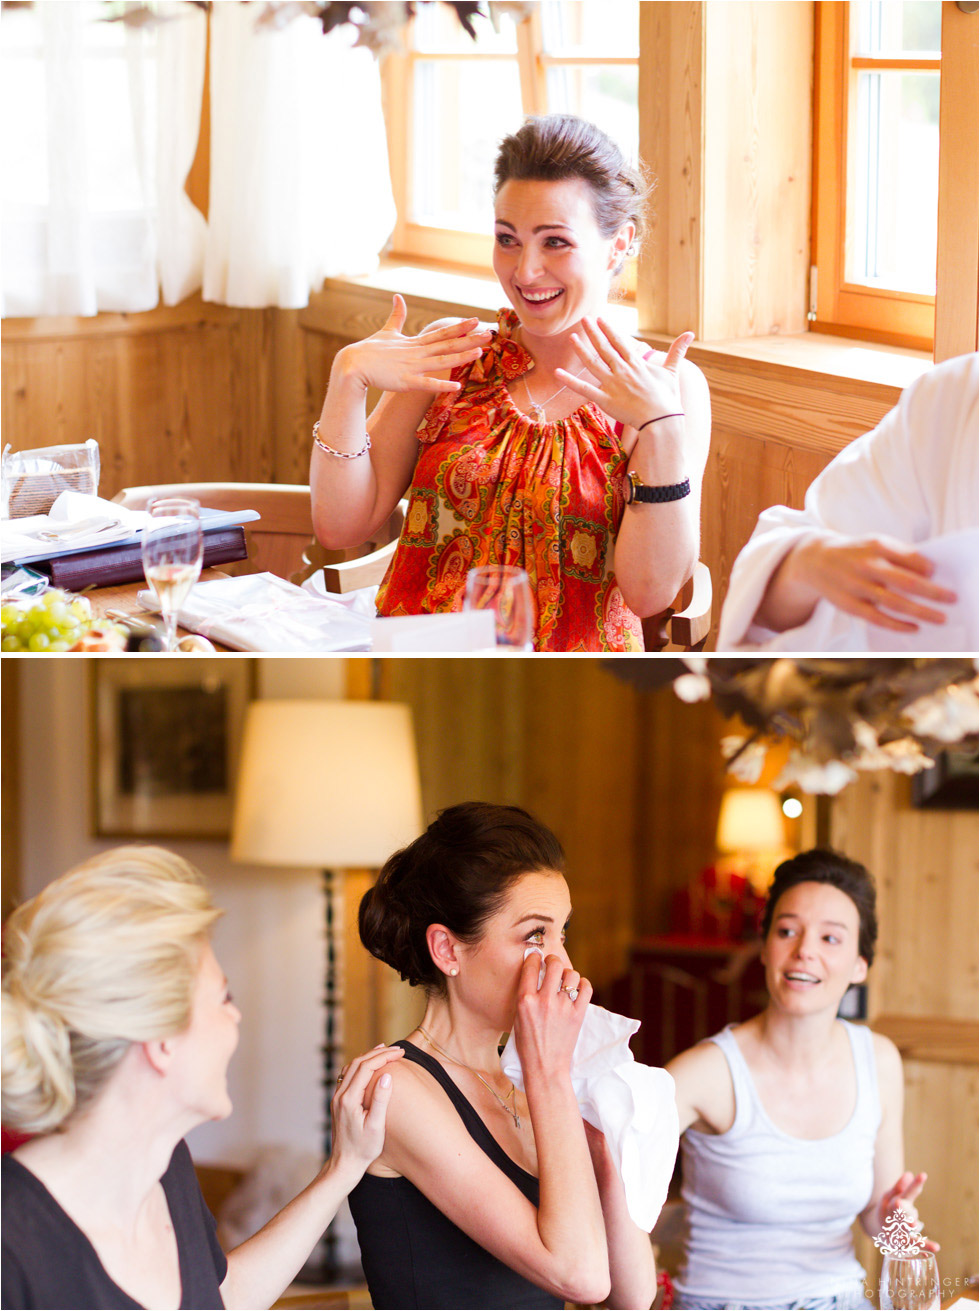 Arlberg Wedding at Gasthof Post, Lech and Hospiz Alm, St. Christoph | Stag & Butterfly Theme - Blog of Nina Hintringer Photography - Wedding Photography, Wedding Reportage and Destination Weddings